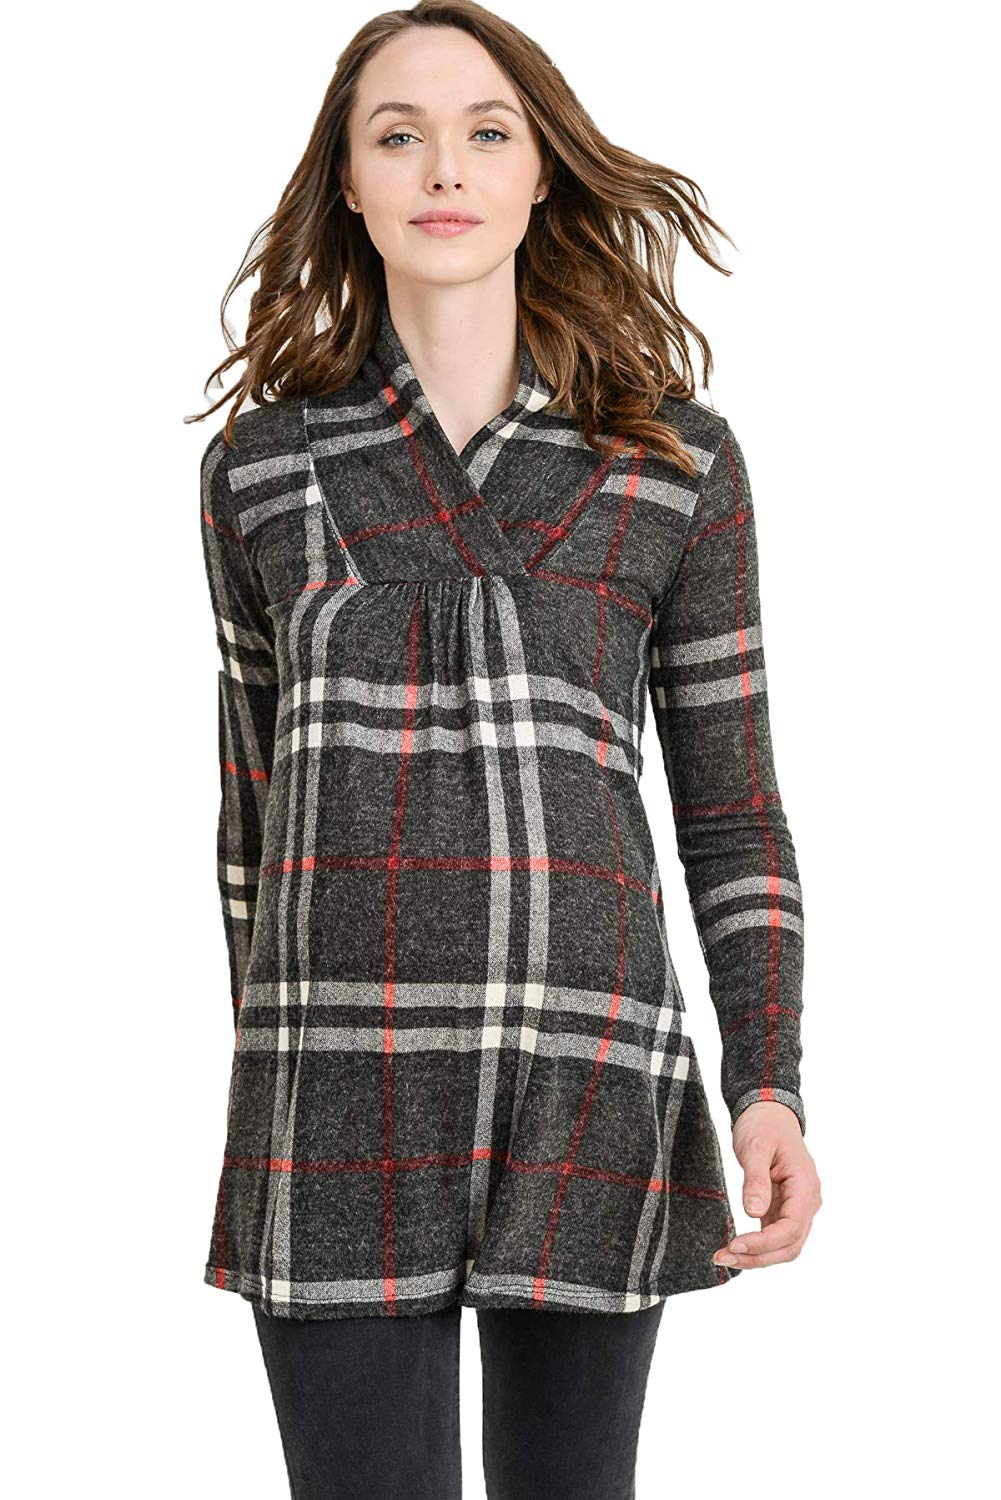 Tartan Knit Maternity Sweater - Mommylicious